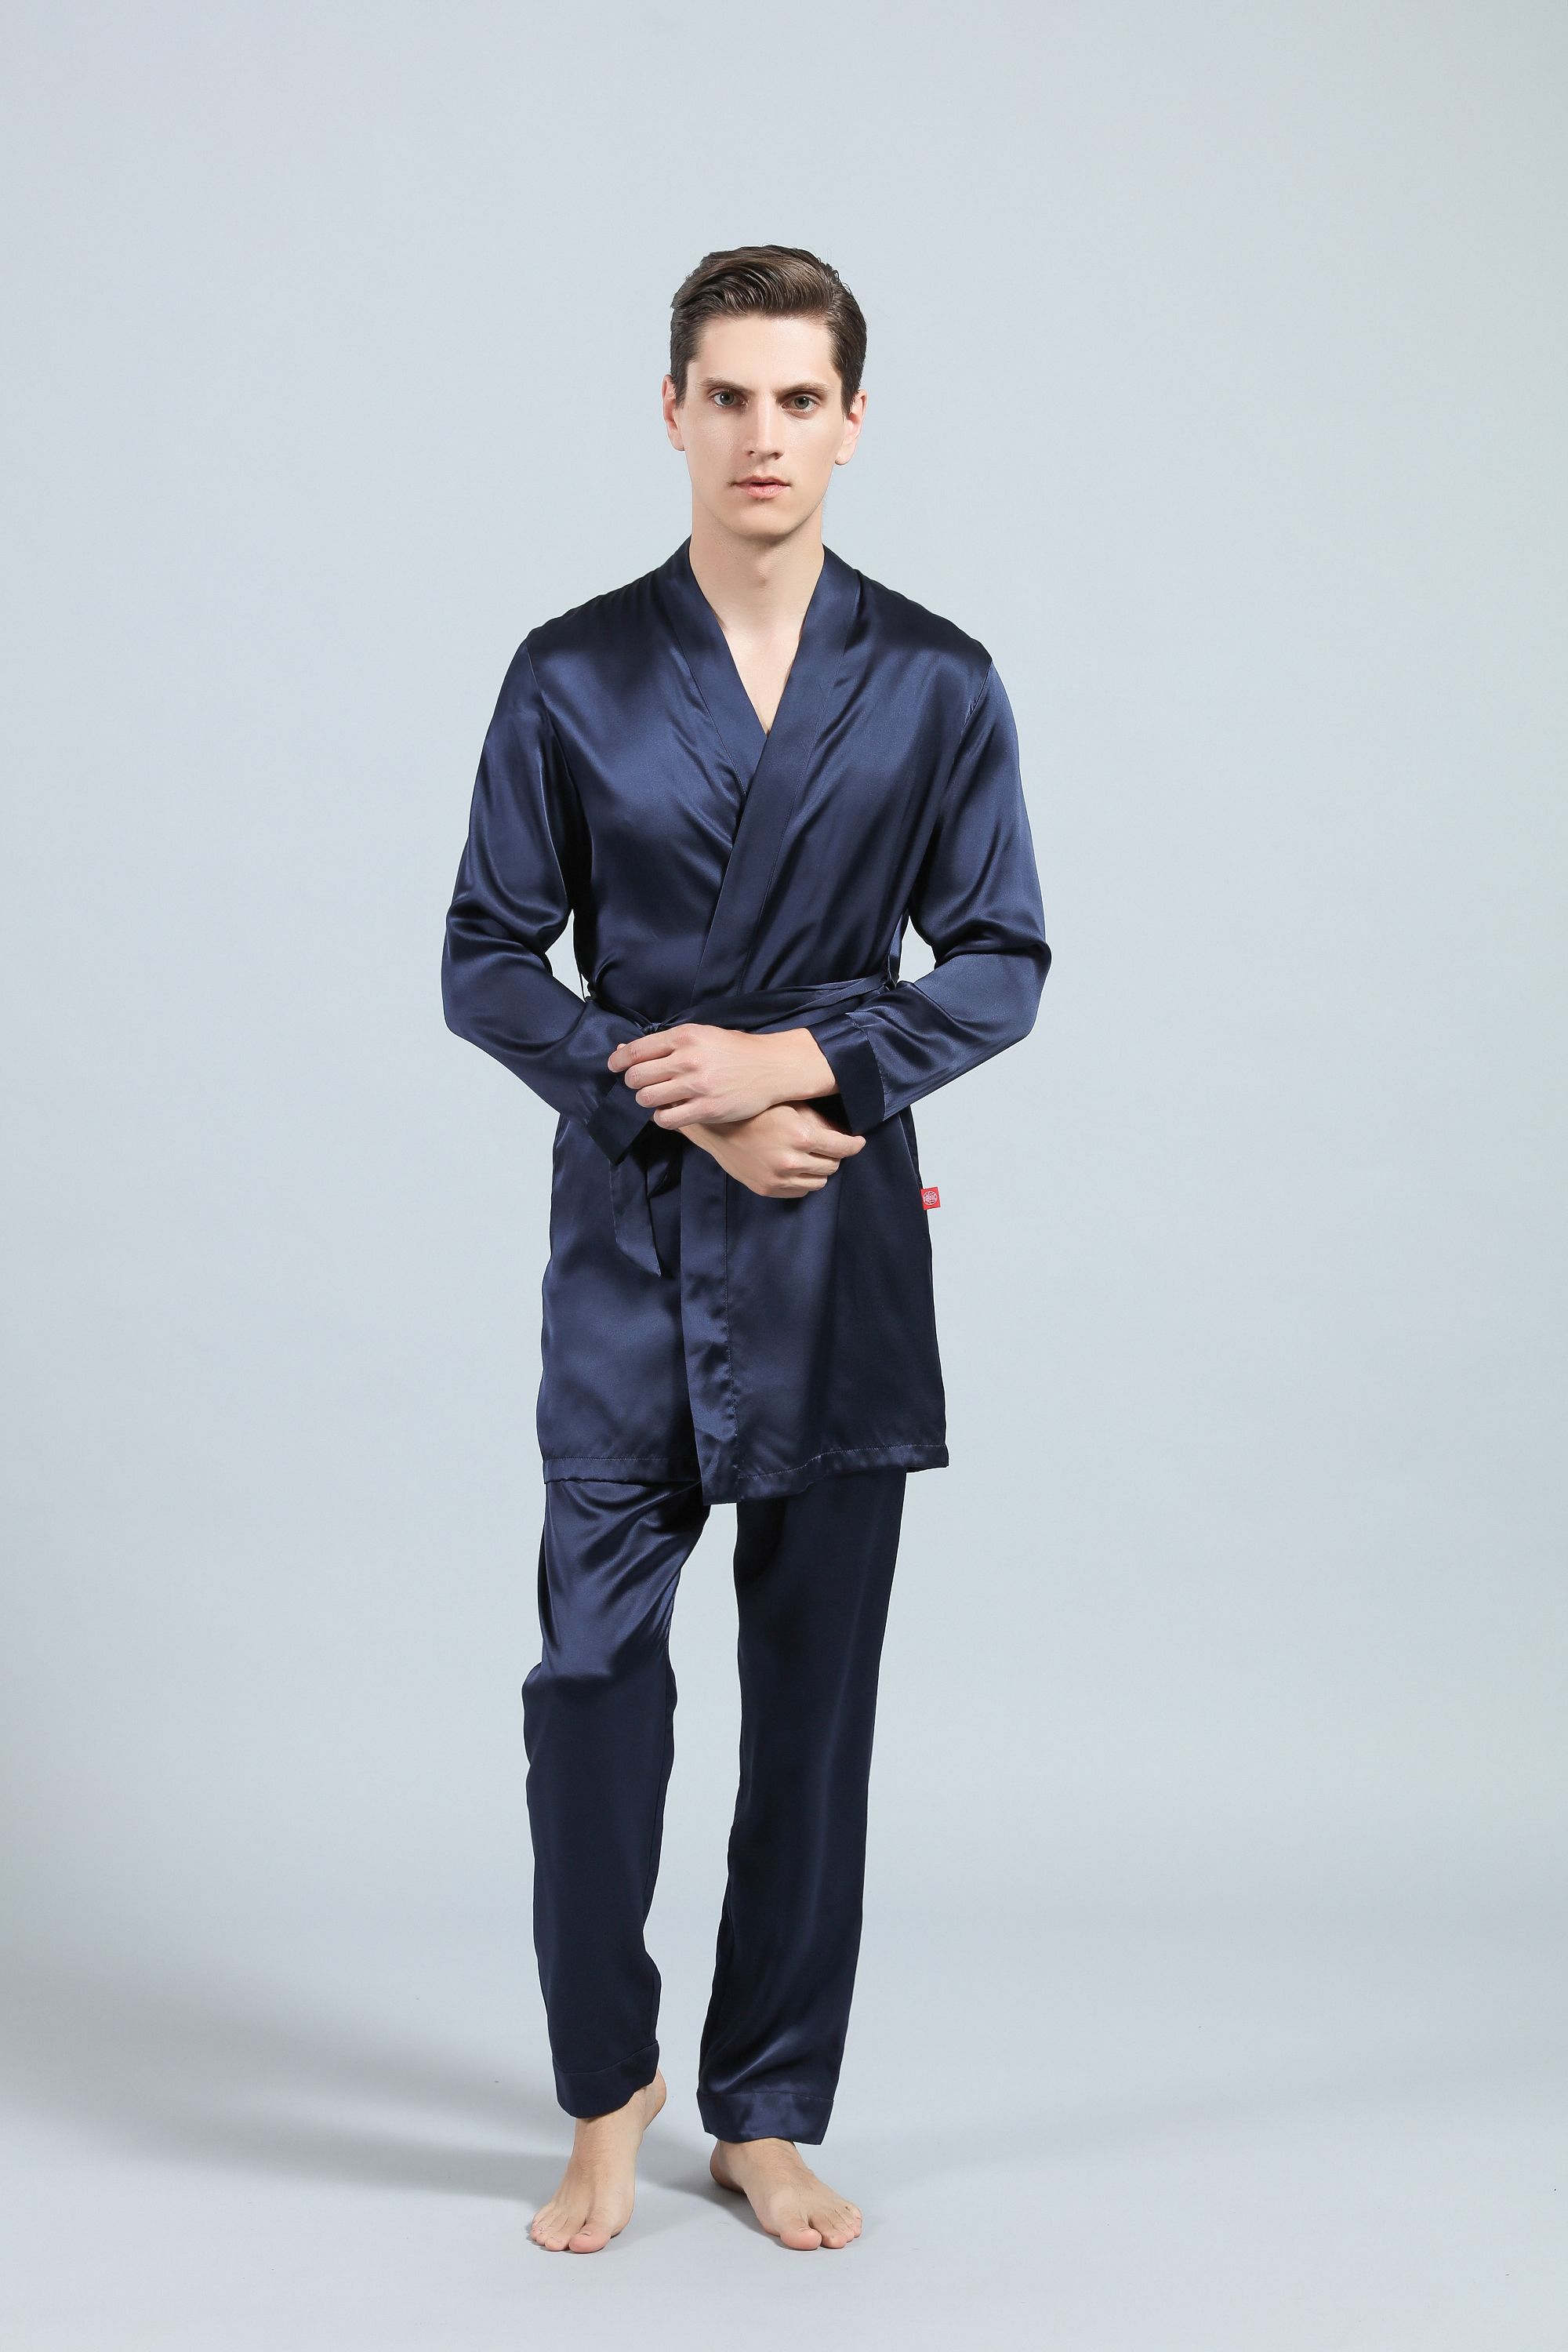 Why Should You Use Men's Silk Pajamas?